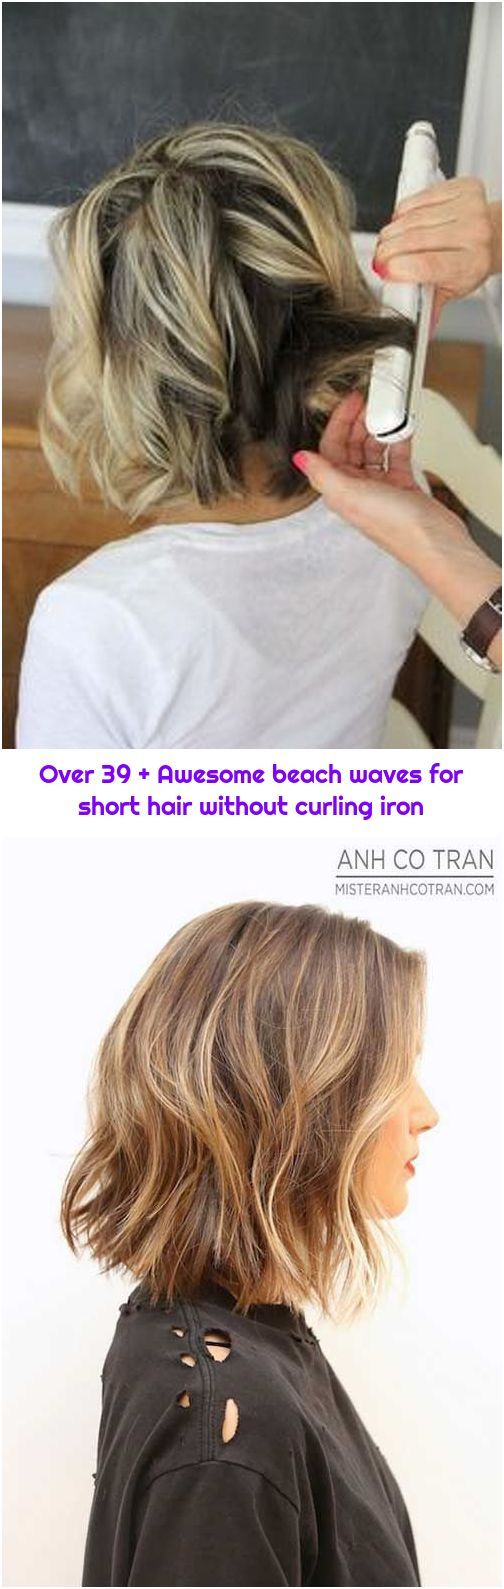 Over 39 Awesome Beach Waves For Short Hair Without Curling Iron Beach Waves For Short Hair Short Hair Waves Pretty Hairstyles